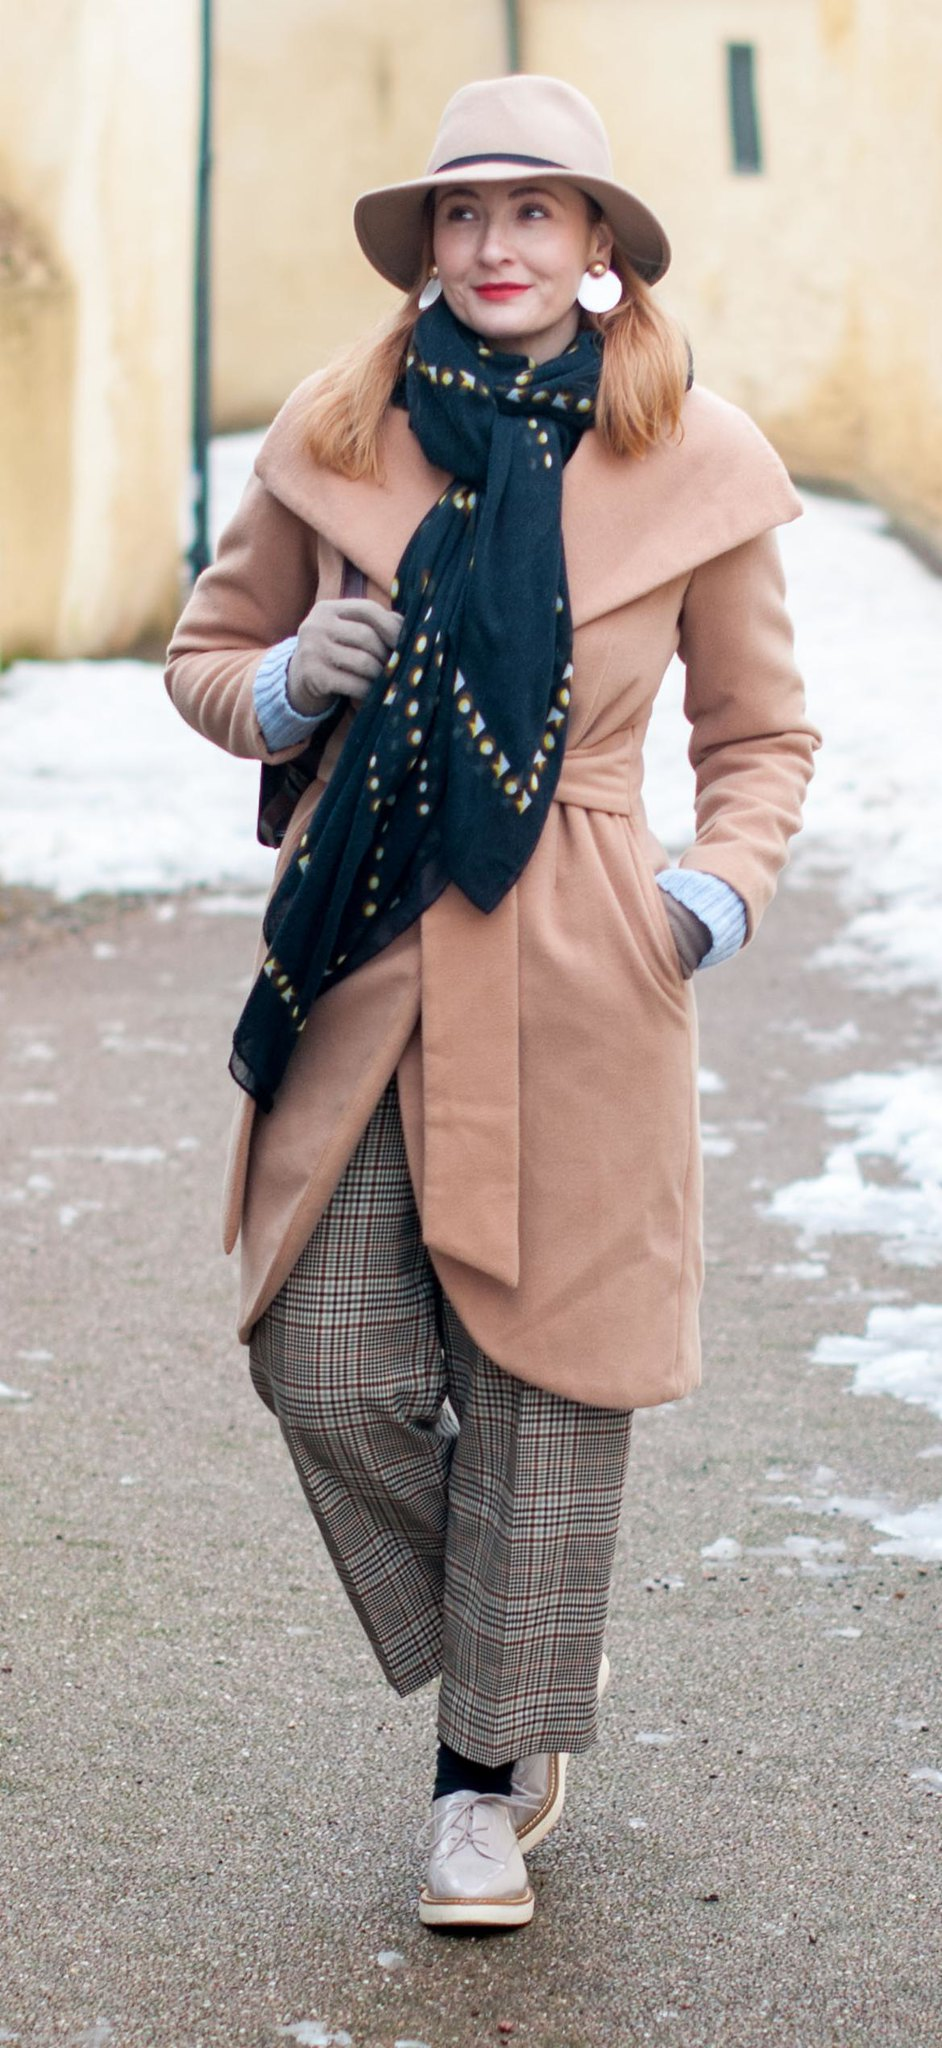 How to Stay Smart and Stylish in the Snow \ winter wear \ winter dressing \ camel wrap coat \ camel fedora hat \ wide leg crop Prince of Wales check trousers \ heritage check pants \ taupe flatform lace-ups | Not Dressed As Lamb, over 40 style